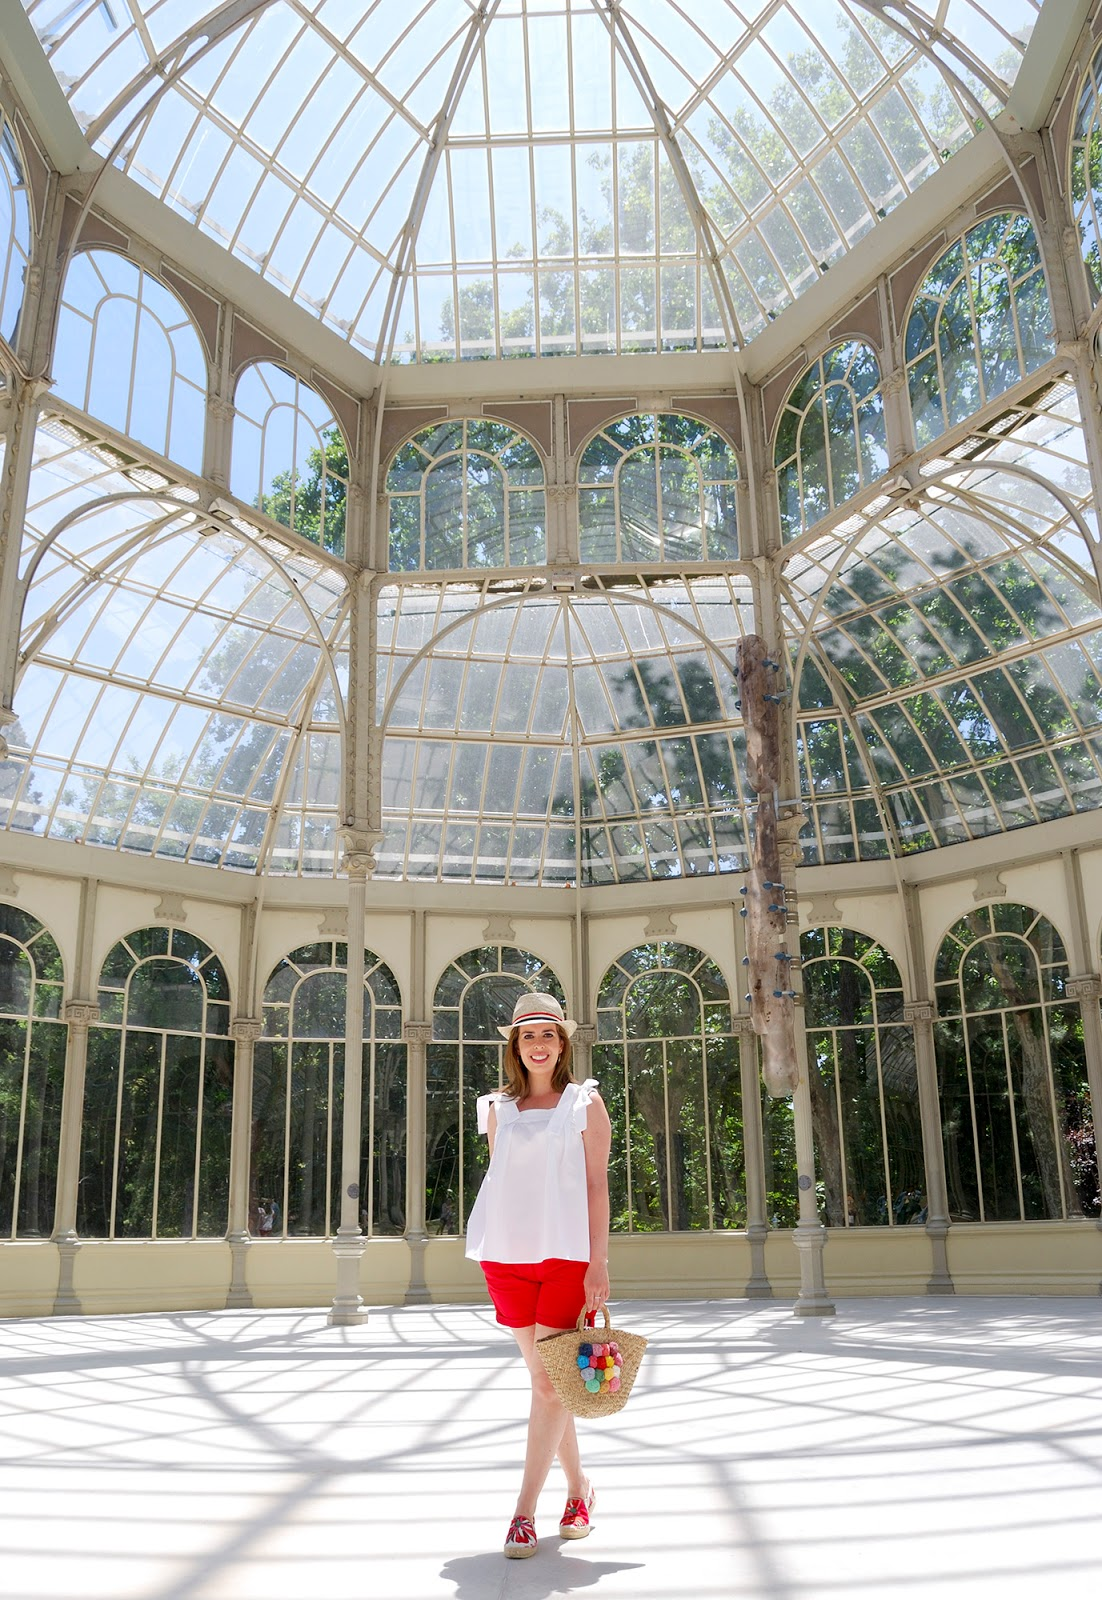 instagram worthy spots places spain instagrammable crystal palace madrid